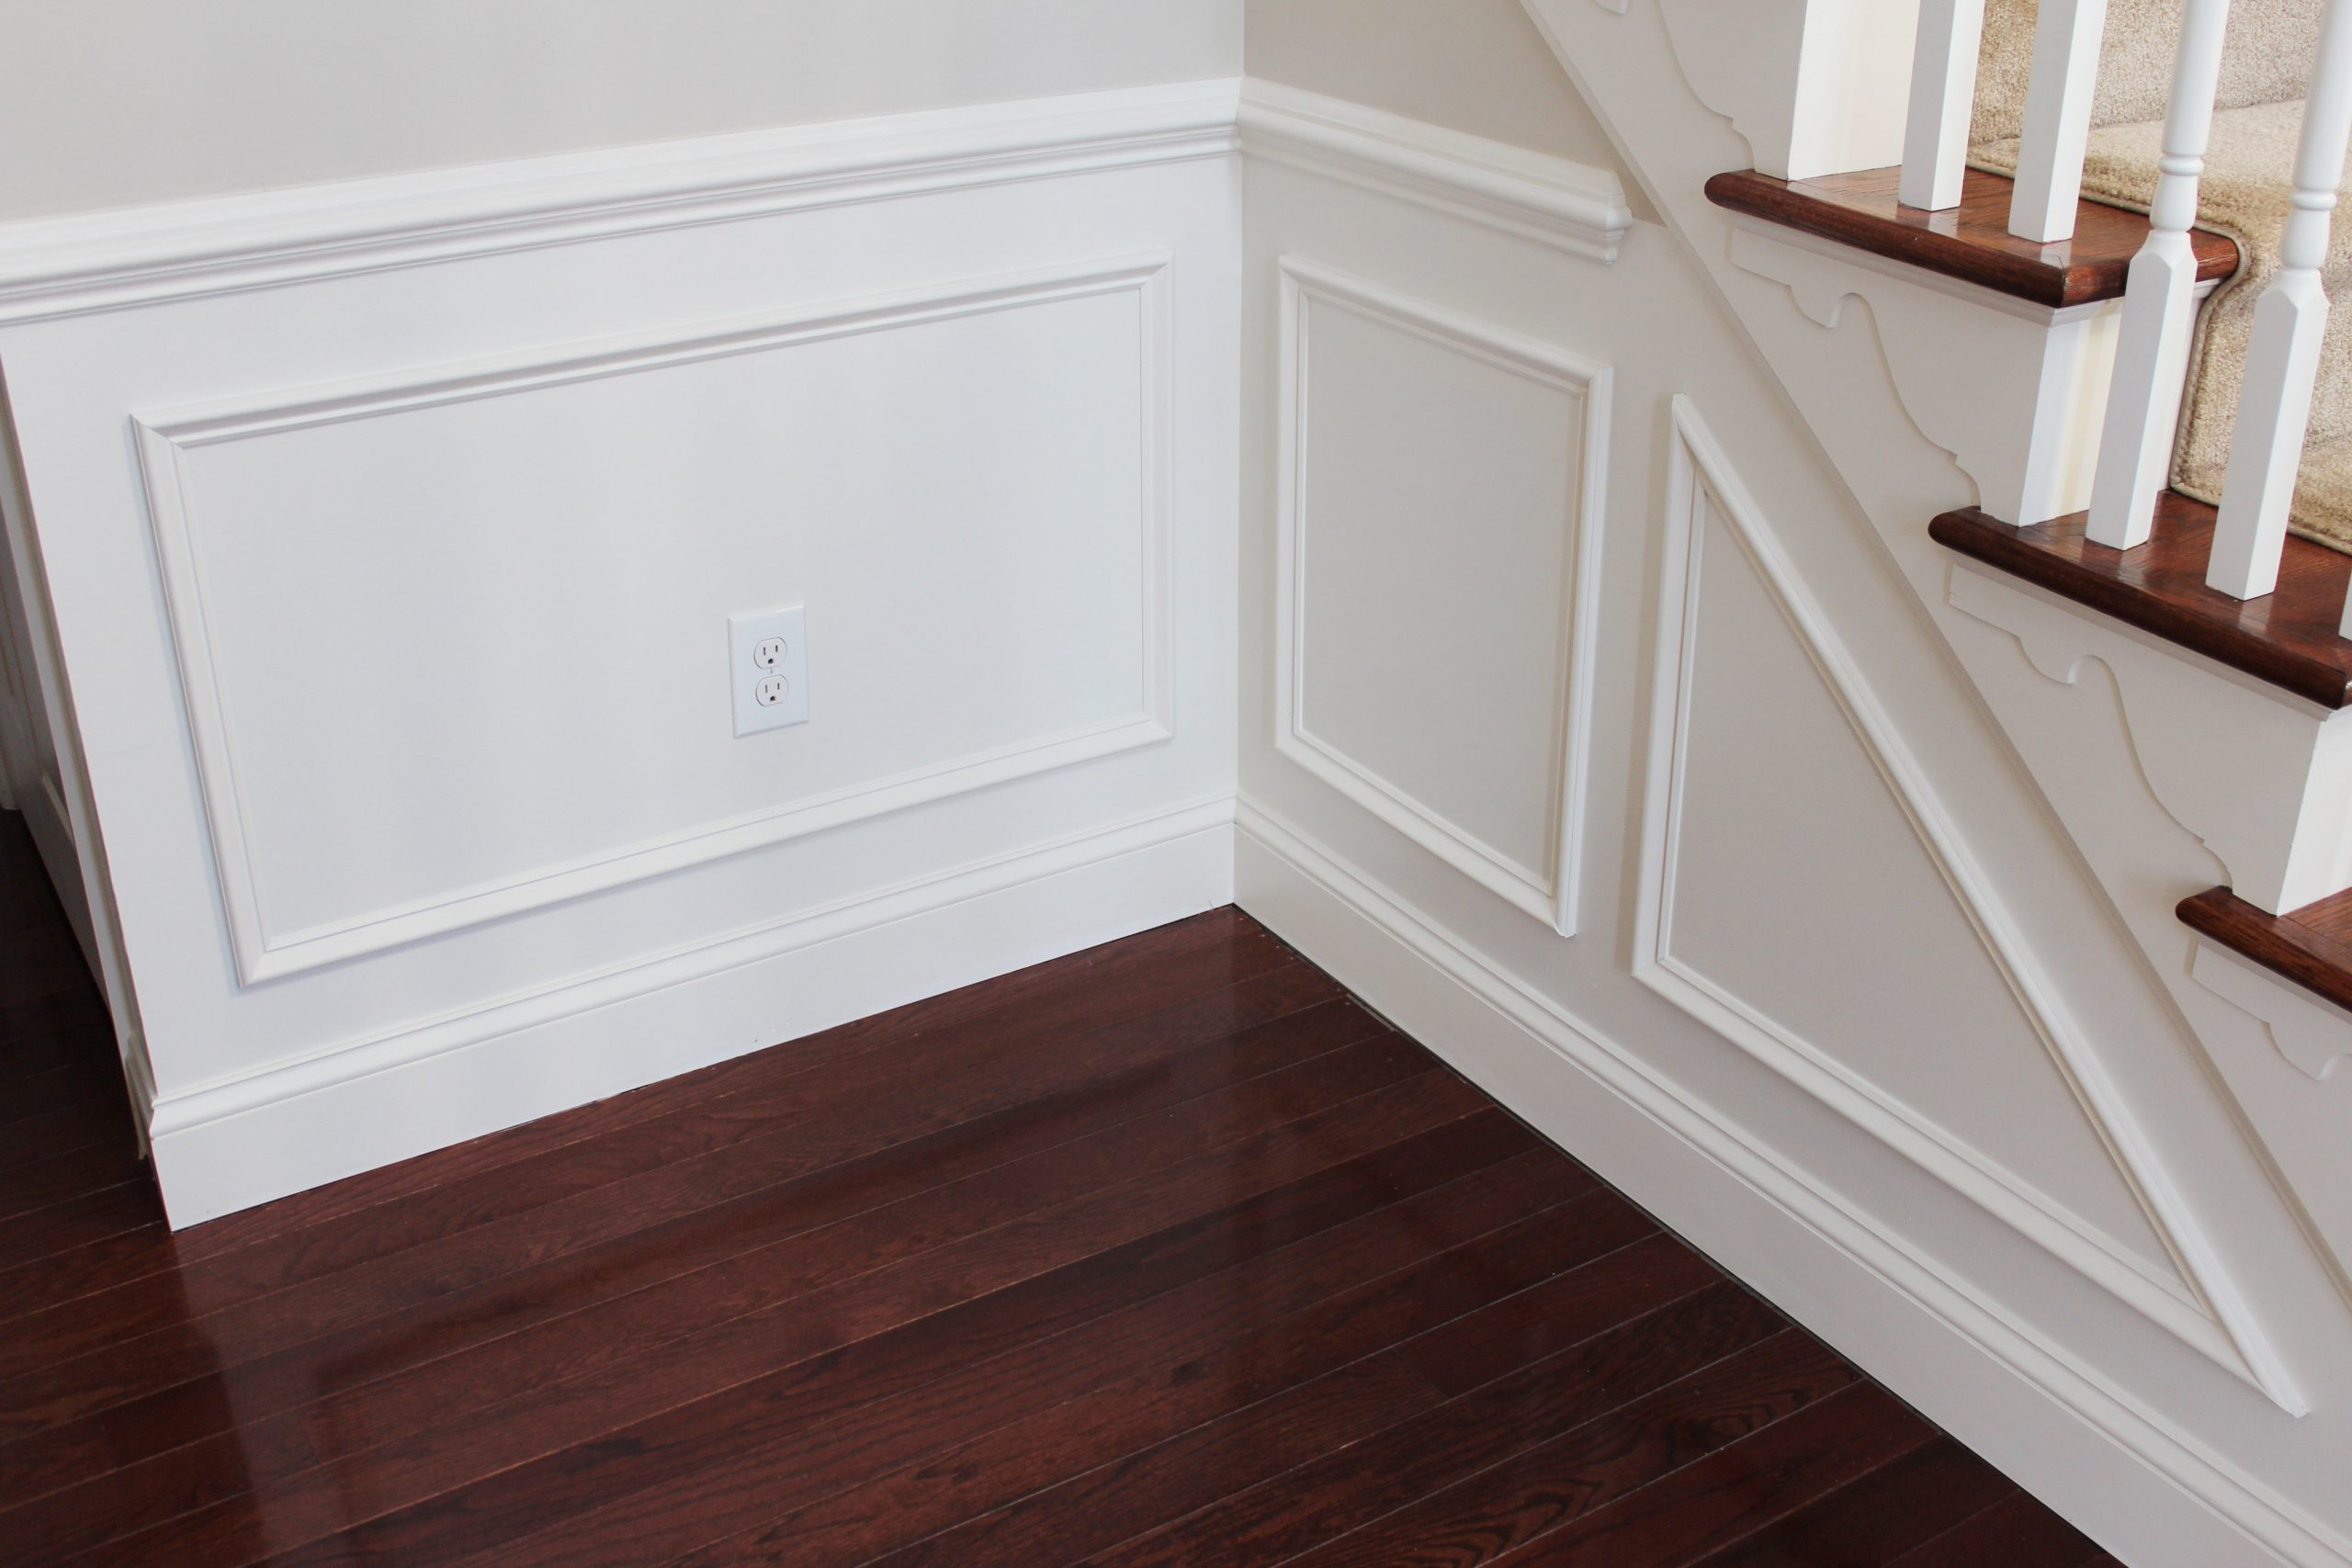 How To Add Molding Squares To A Wall | Ehow intended for Half Wall Cap Moulding